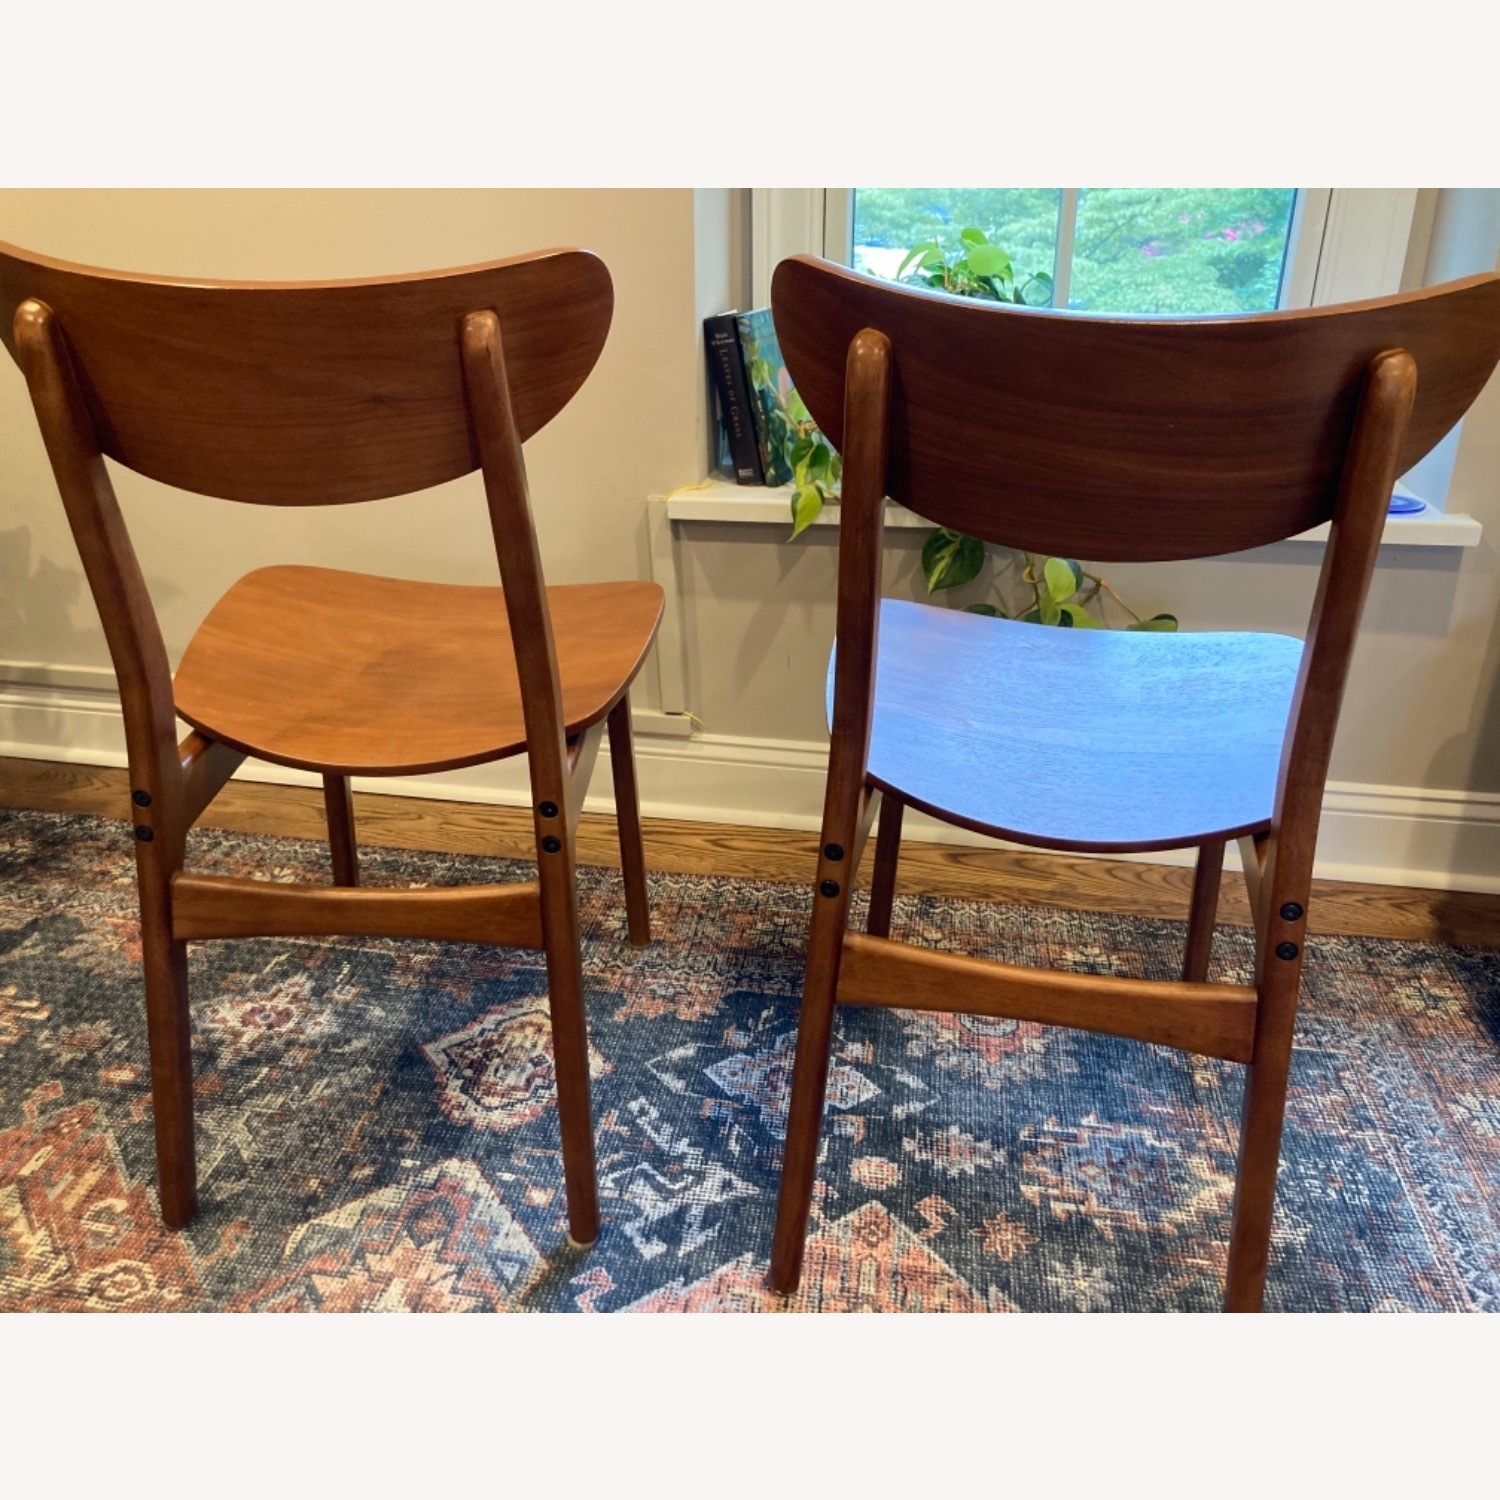 West Elm Walnut Dining Chairs - image-3